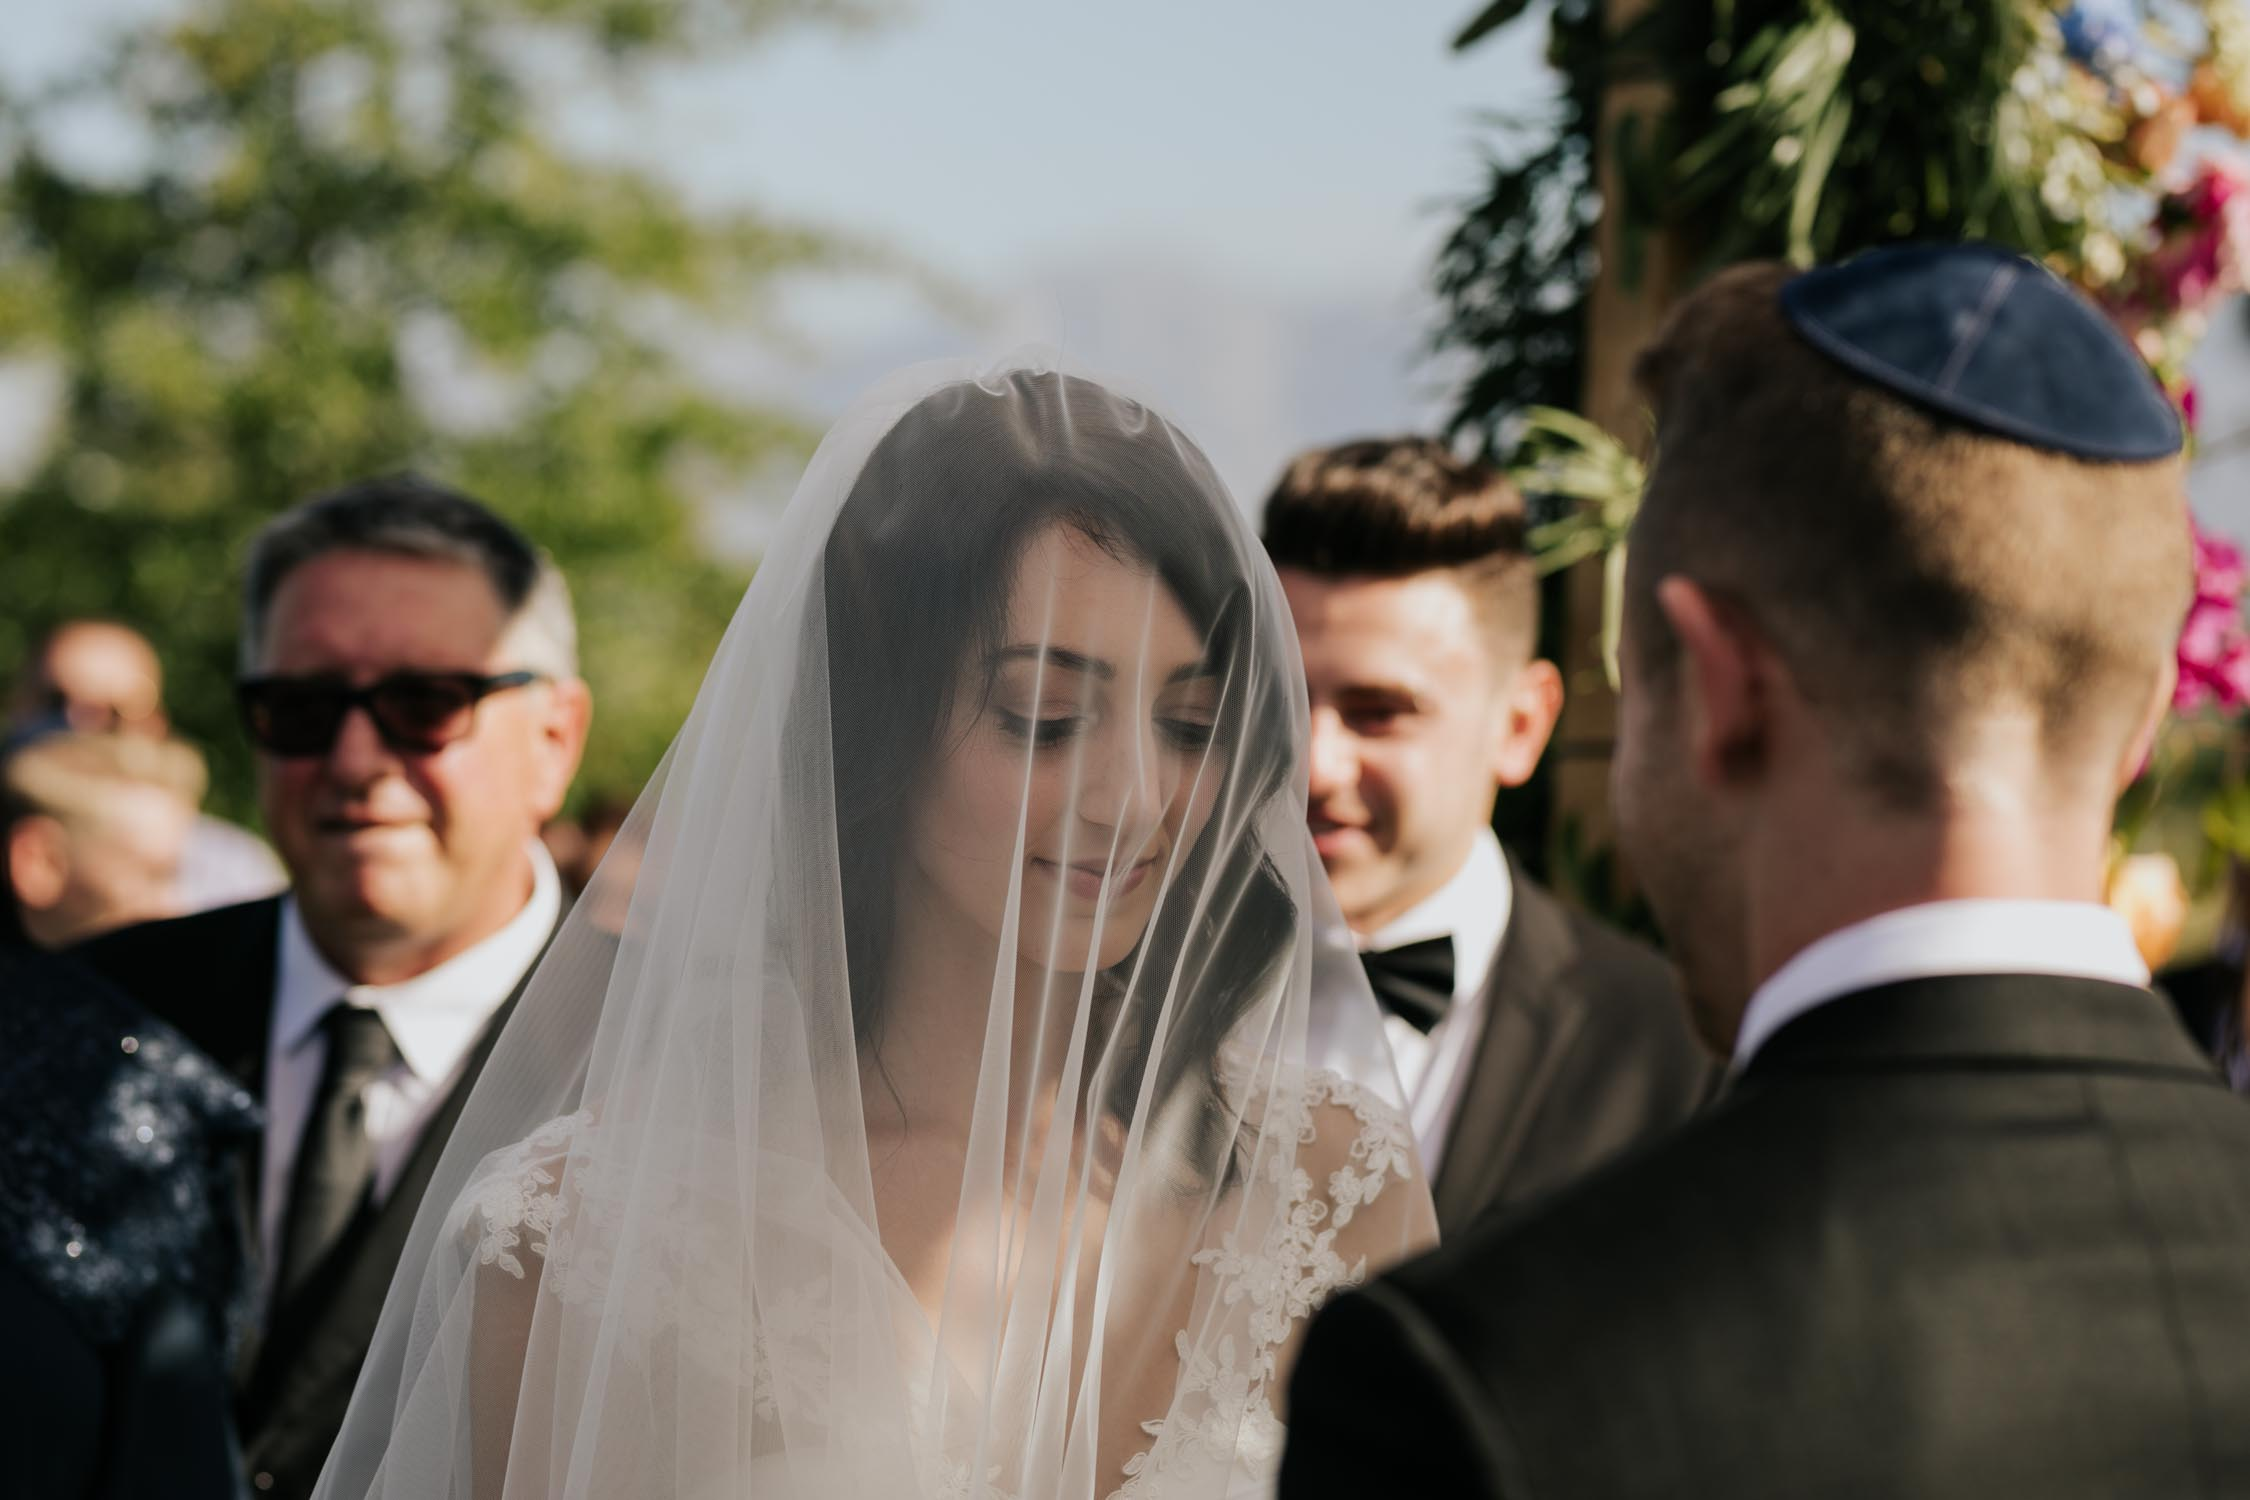 Bride and groom exchanges rings under the chuppah